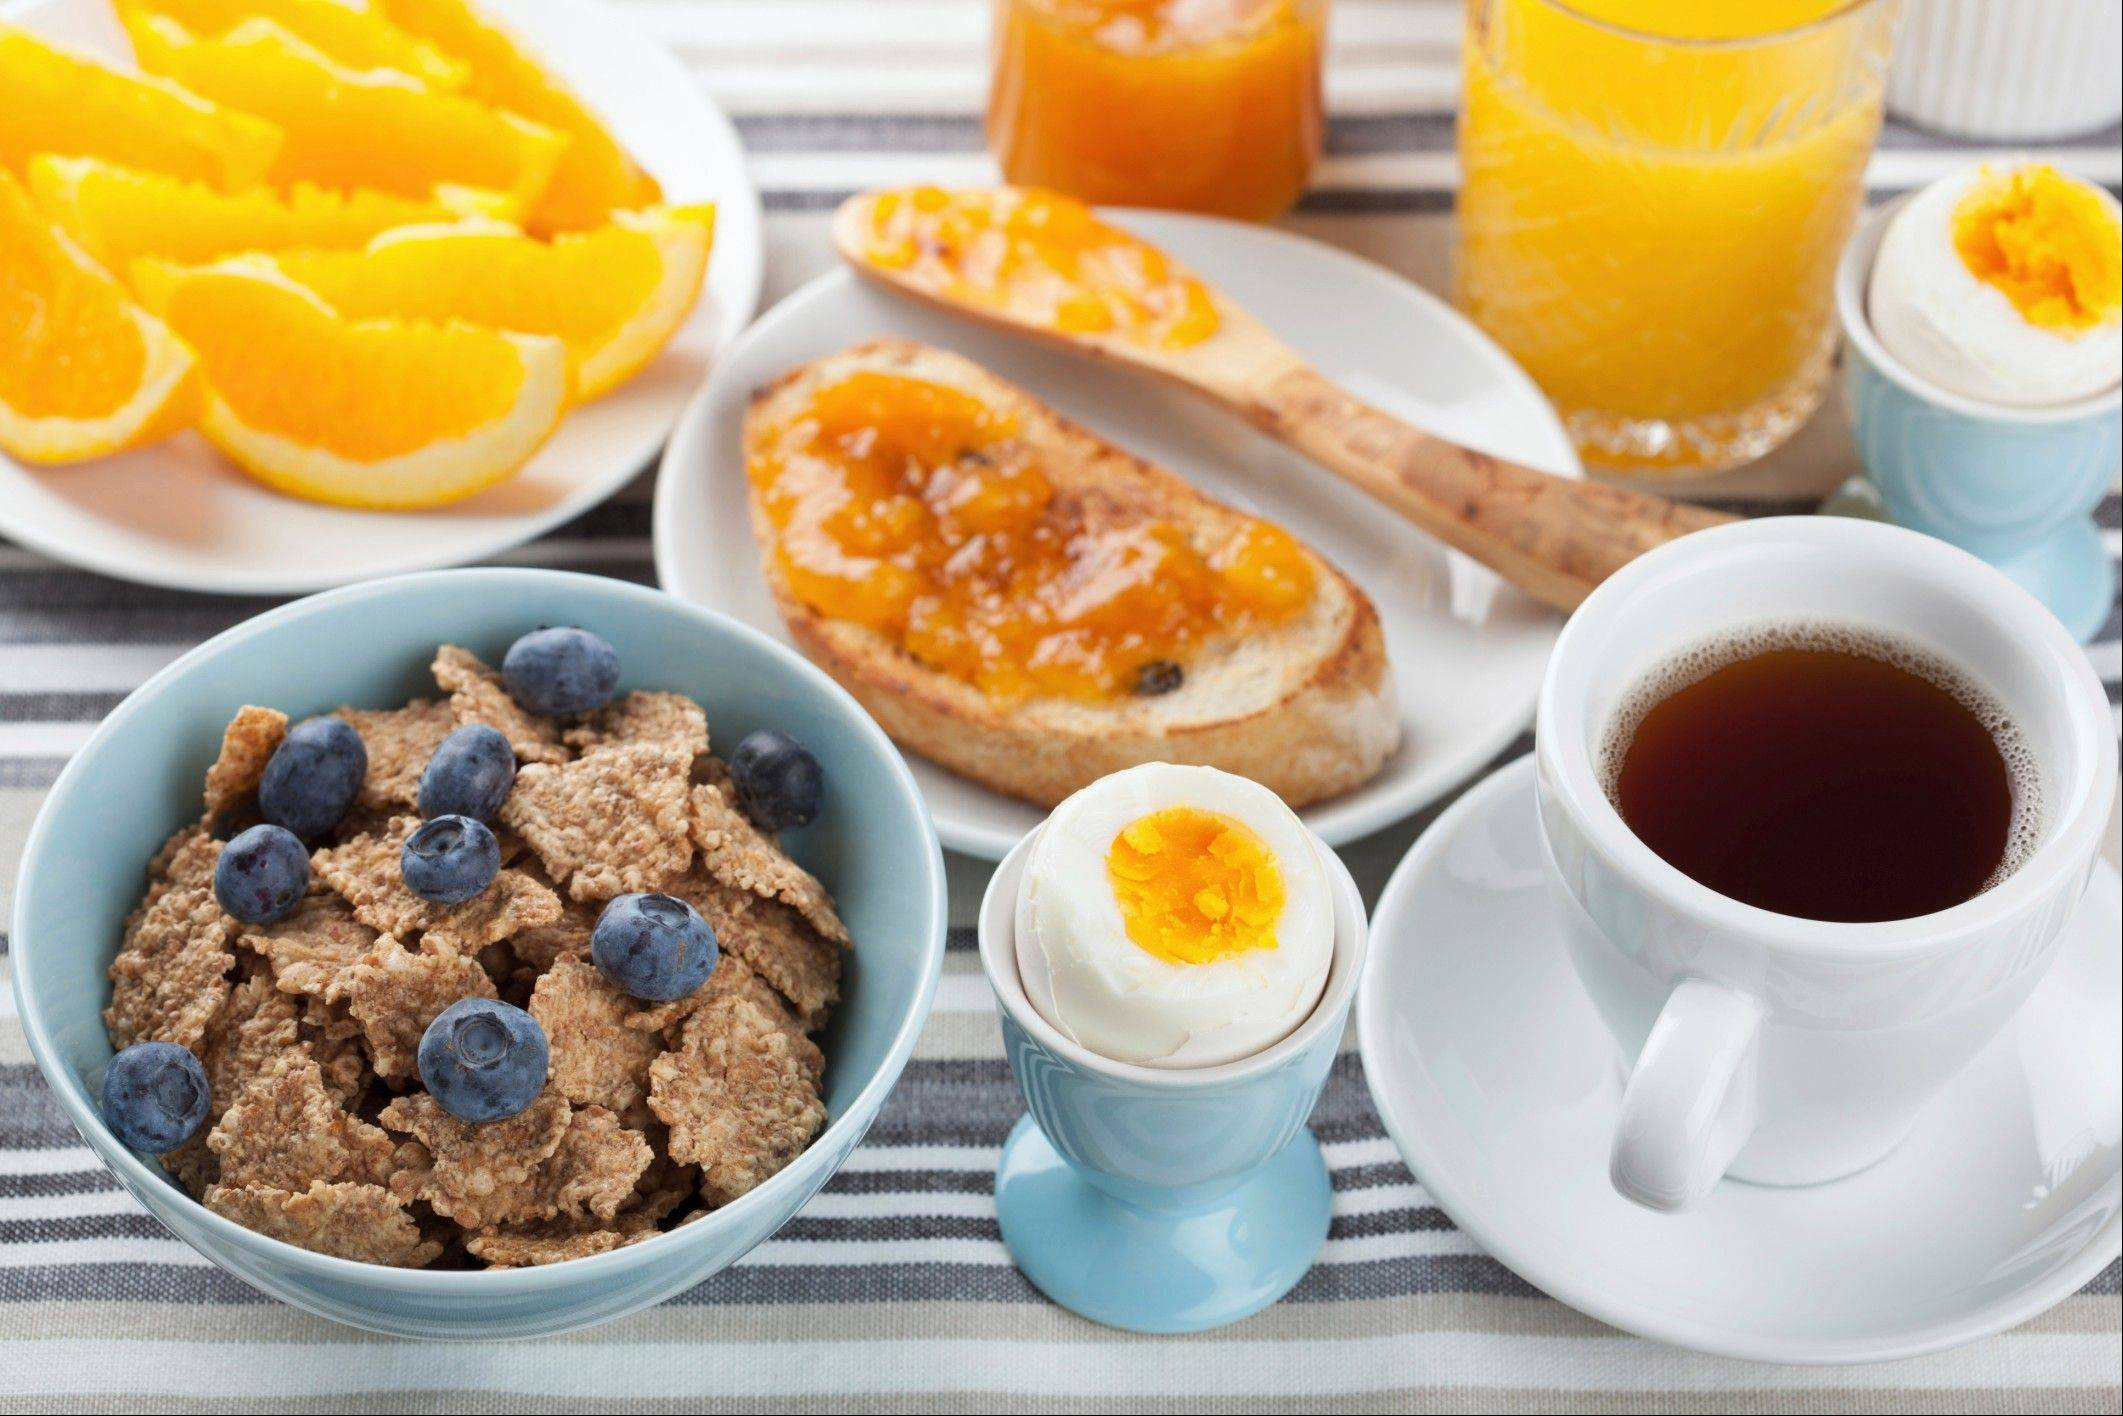 Recent scientific studies give mixed evidence about what morning meal plan might be best for our health.